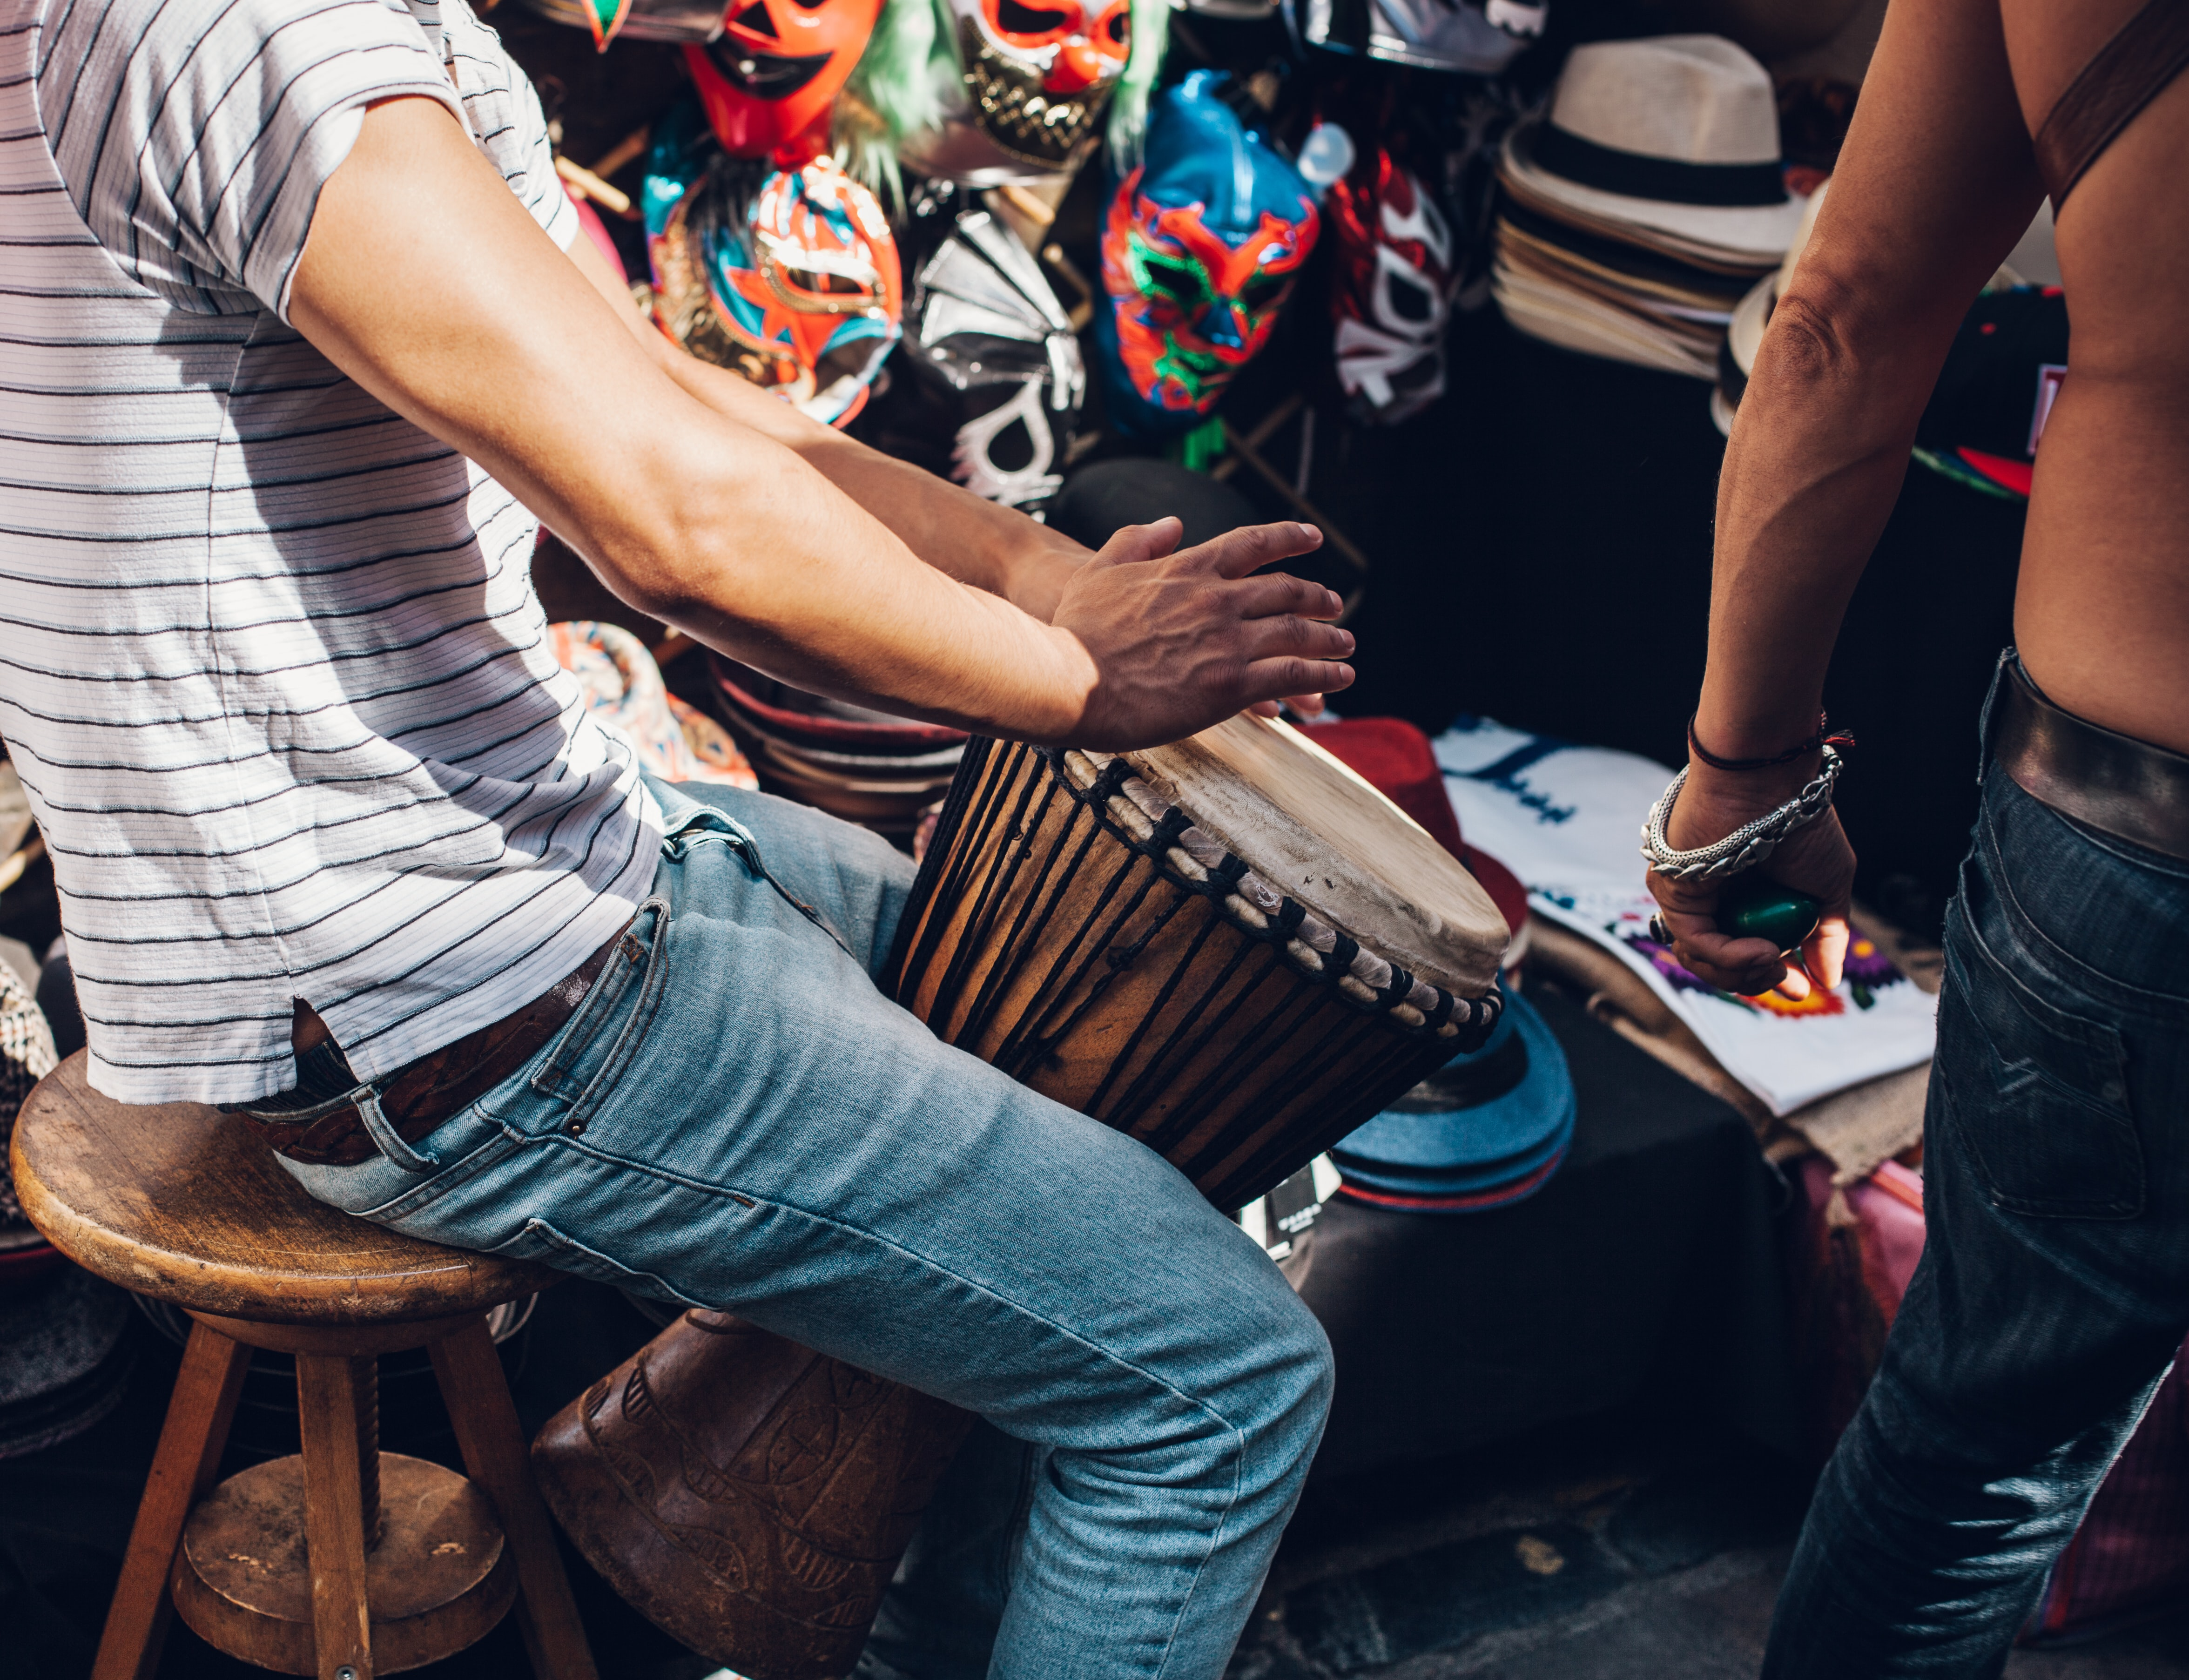 A man in jeans and t-shirt playing a tall drum on Brick Lane Market